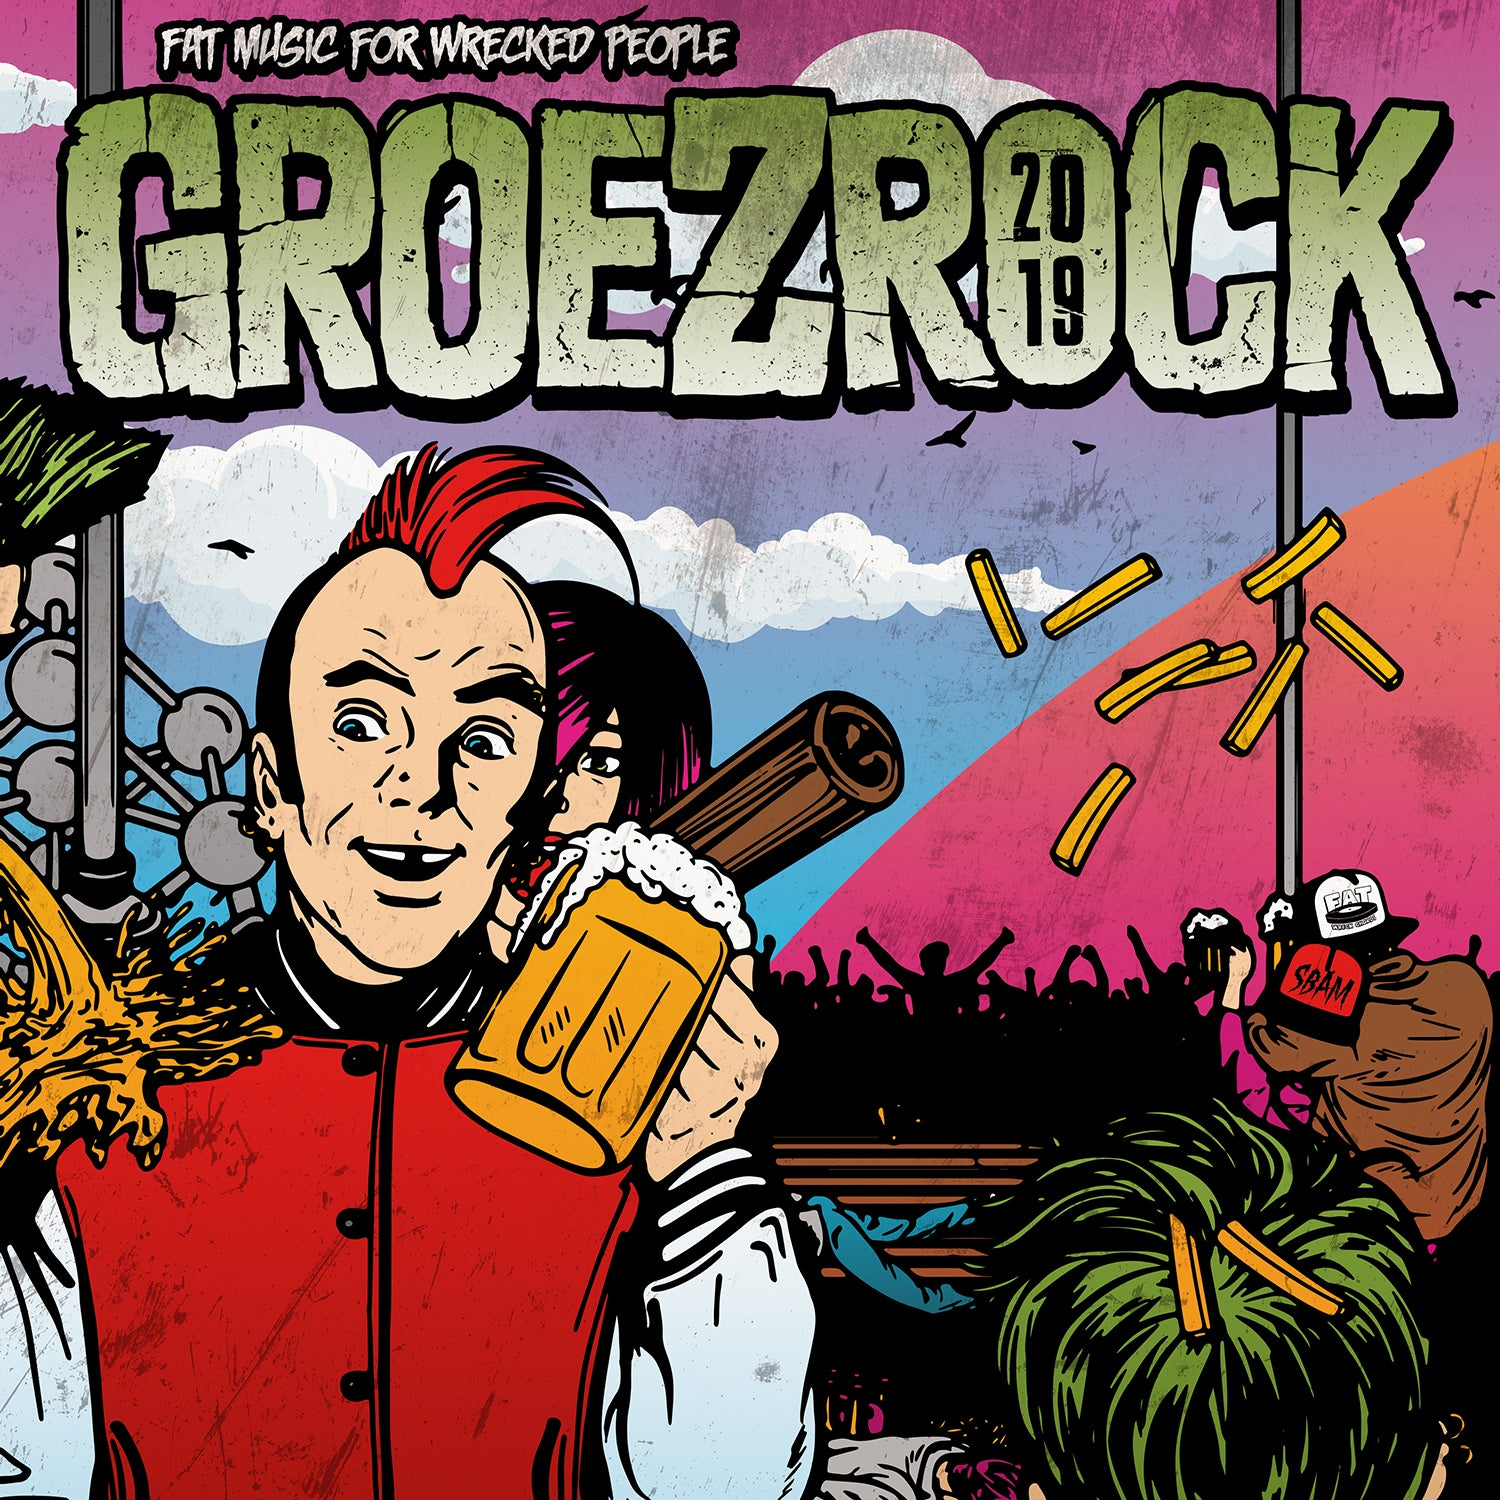 Fat Music For Wrecked People: Groezrock 2019